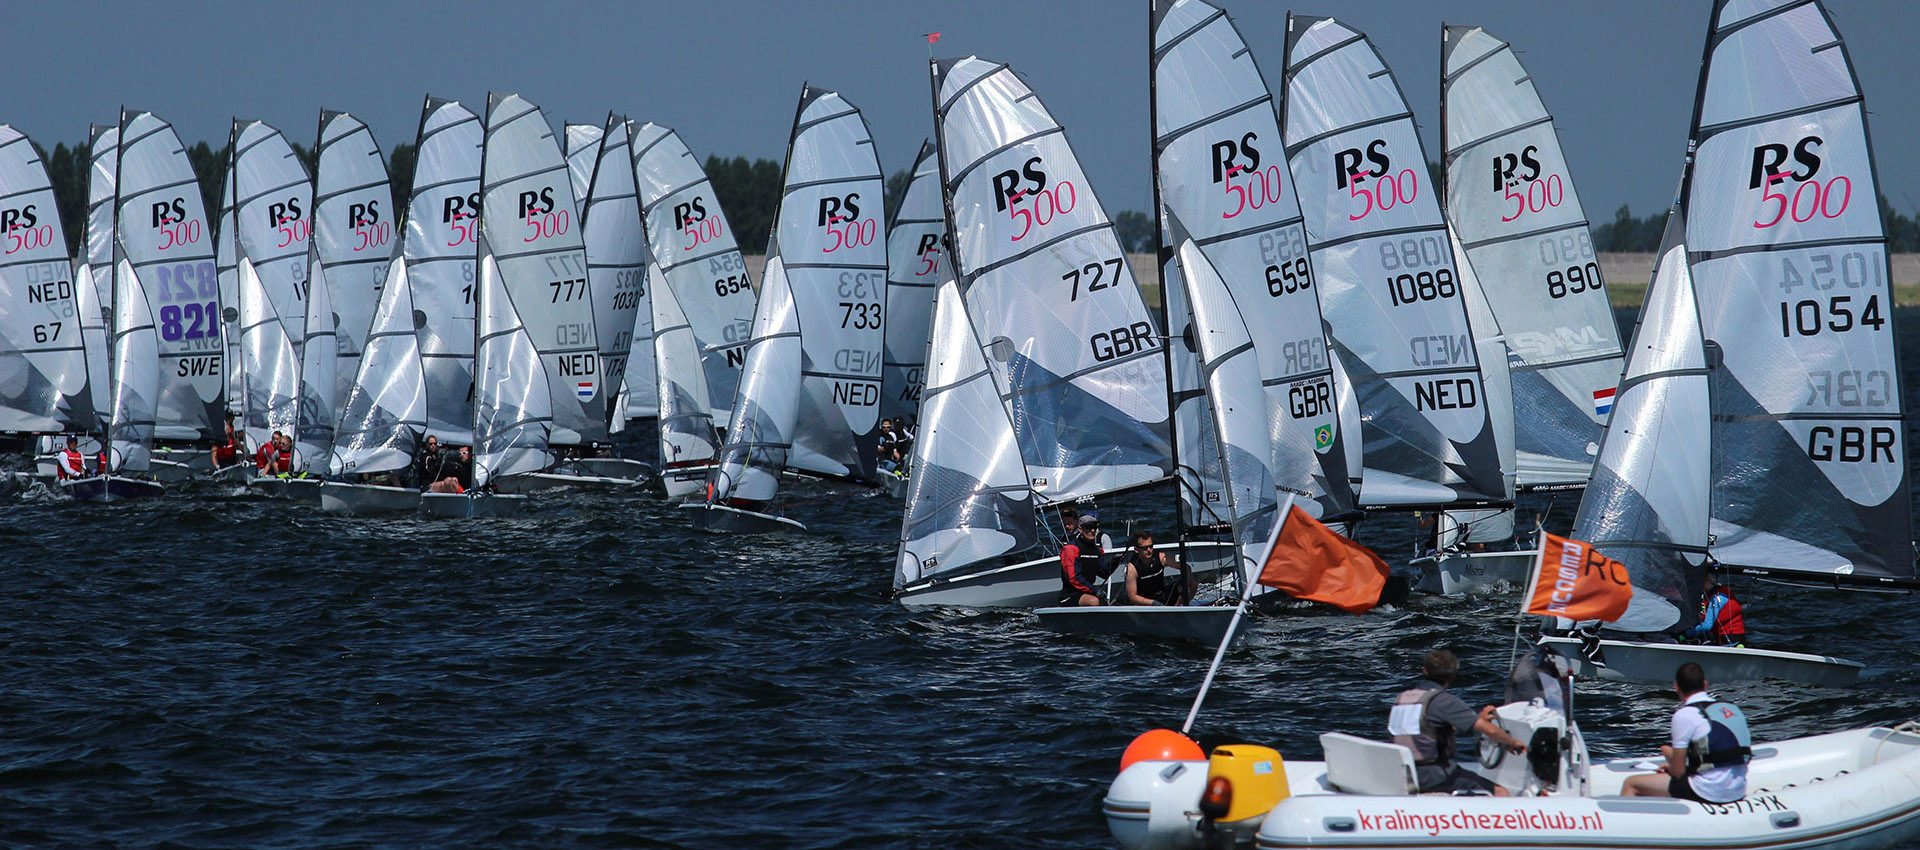 hight resolution of dinghy racing